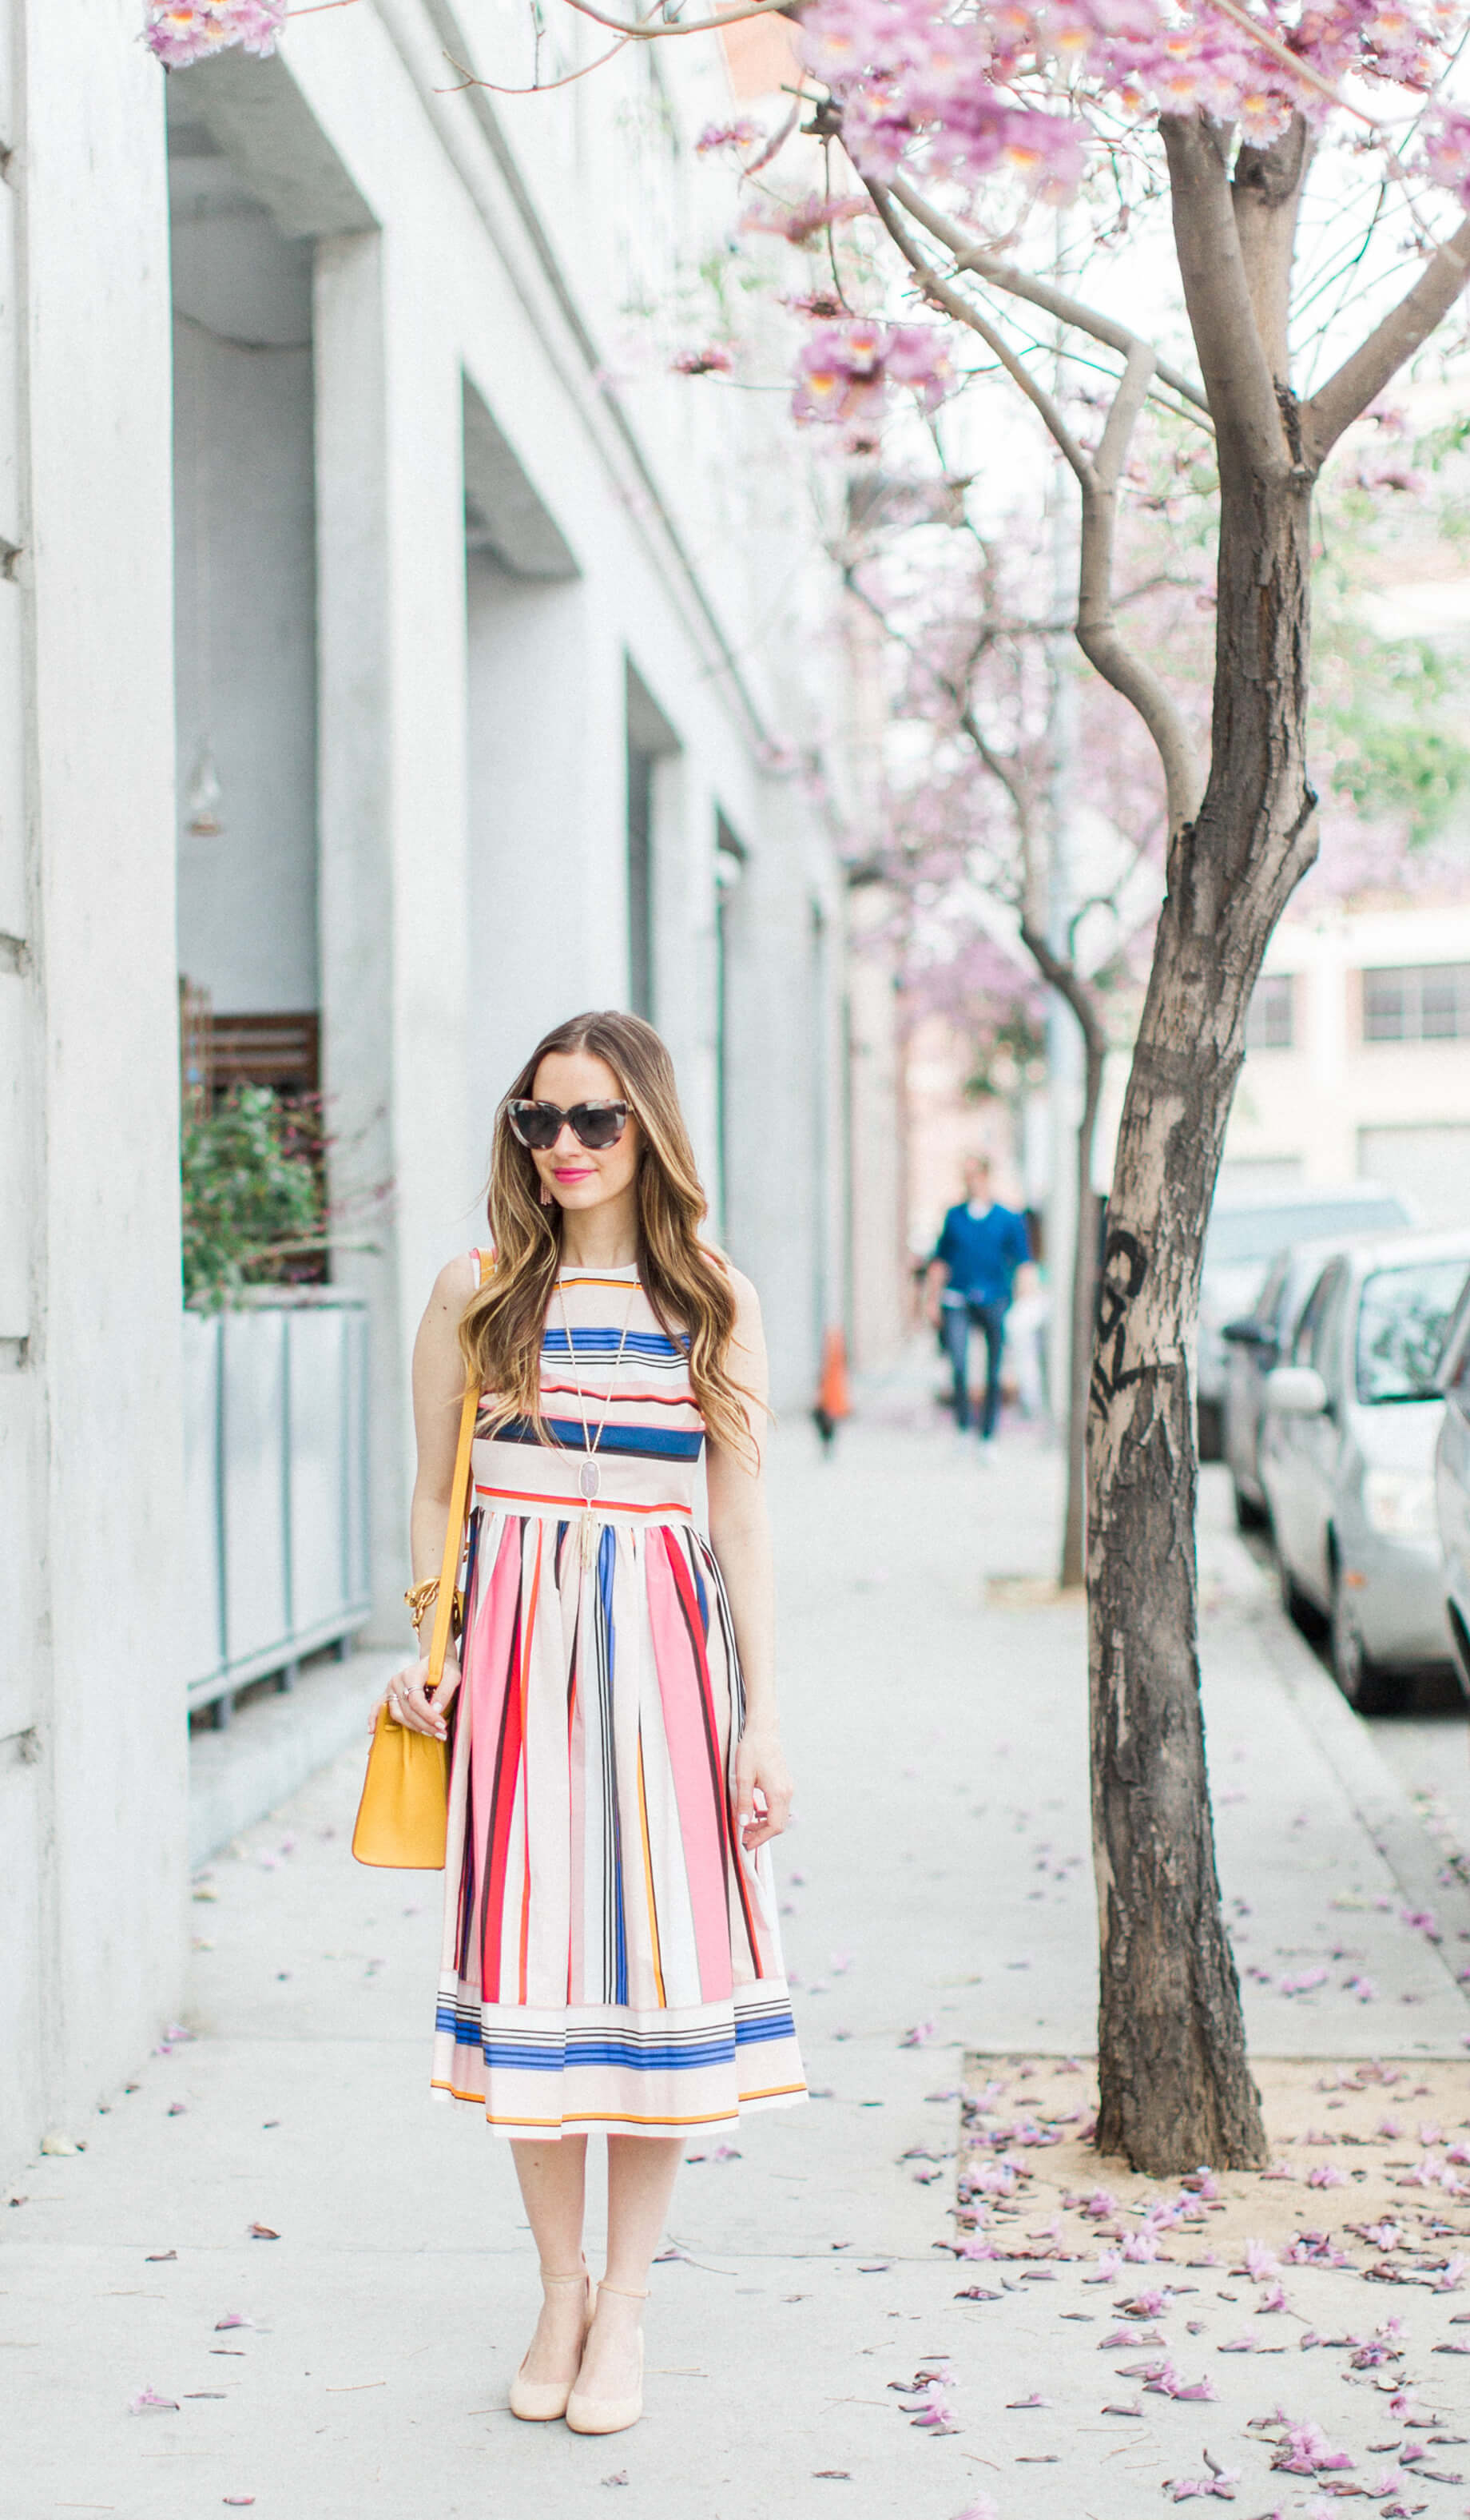 A Colorful Striped Dress for Spring